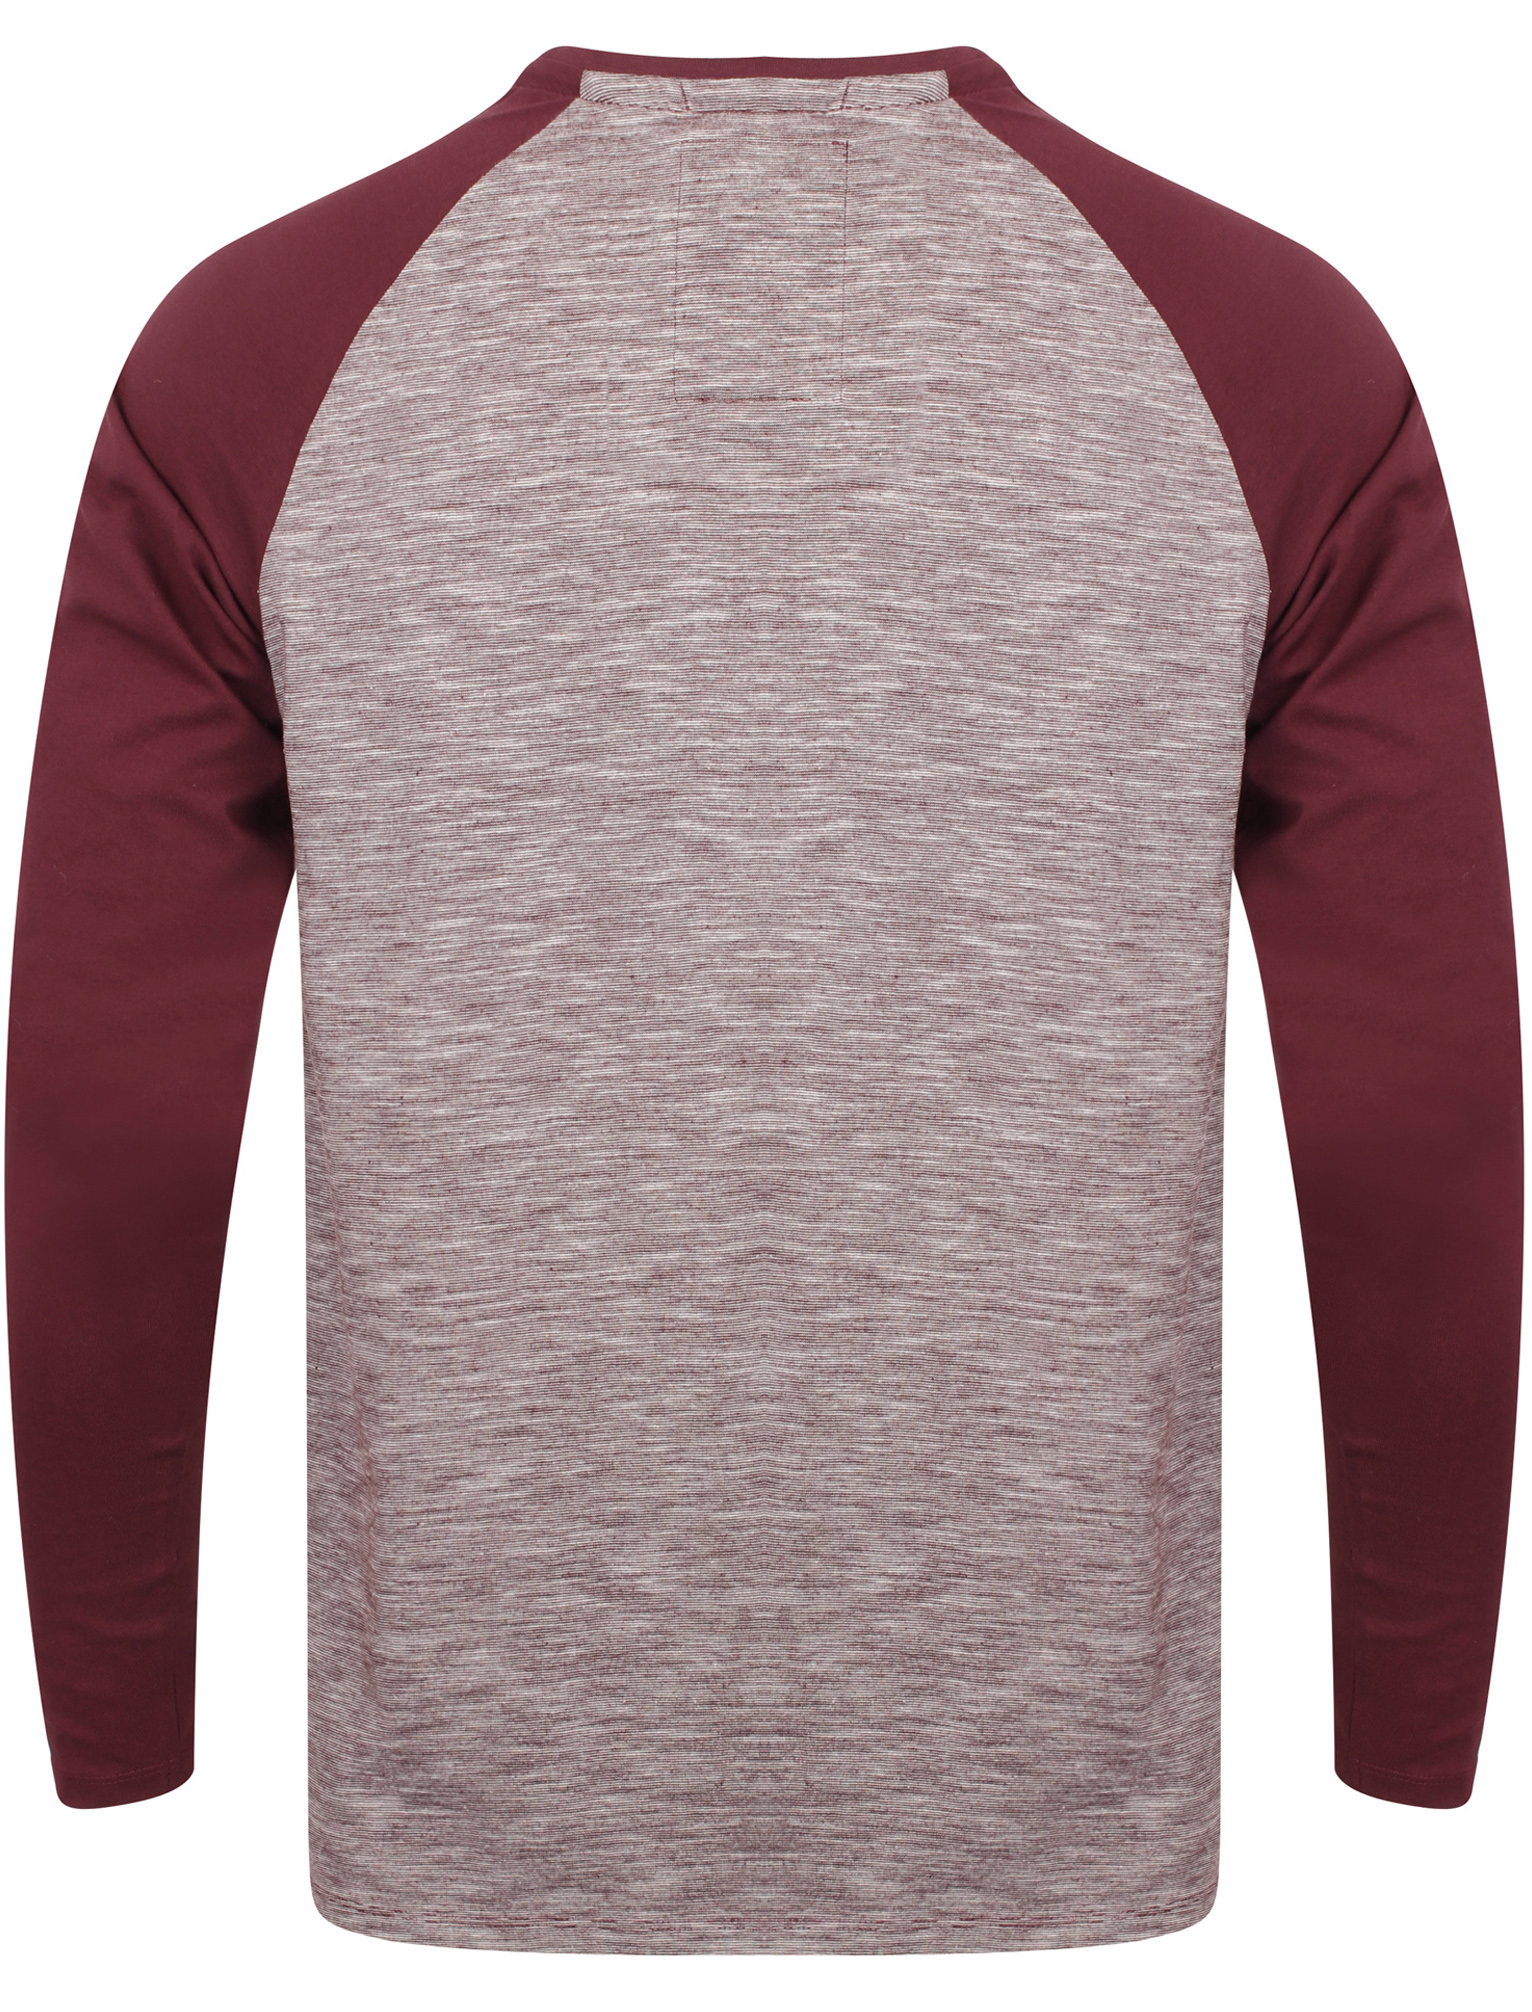 New-Mens-Tokyo-Laundry-Branded-Soft-Jersey-Long-Sleeve-Tops-T-Shirts-Size-S-XL thumbnail 31